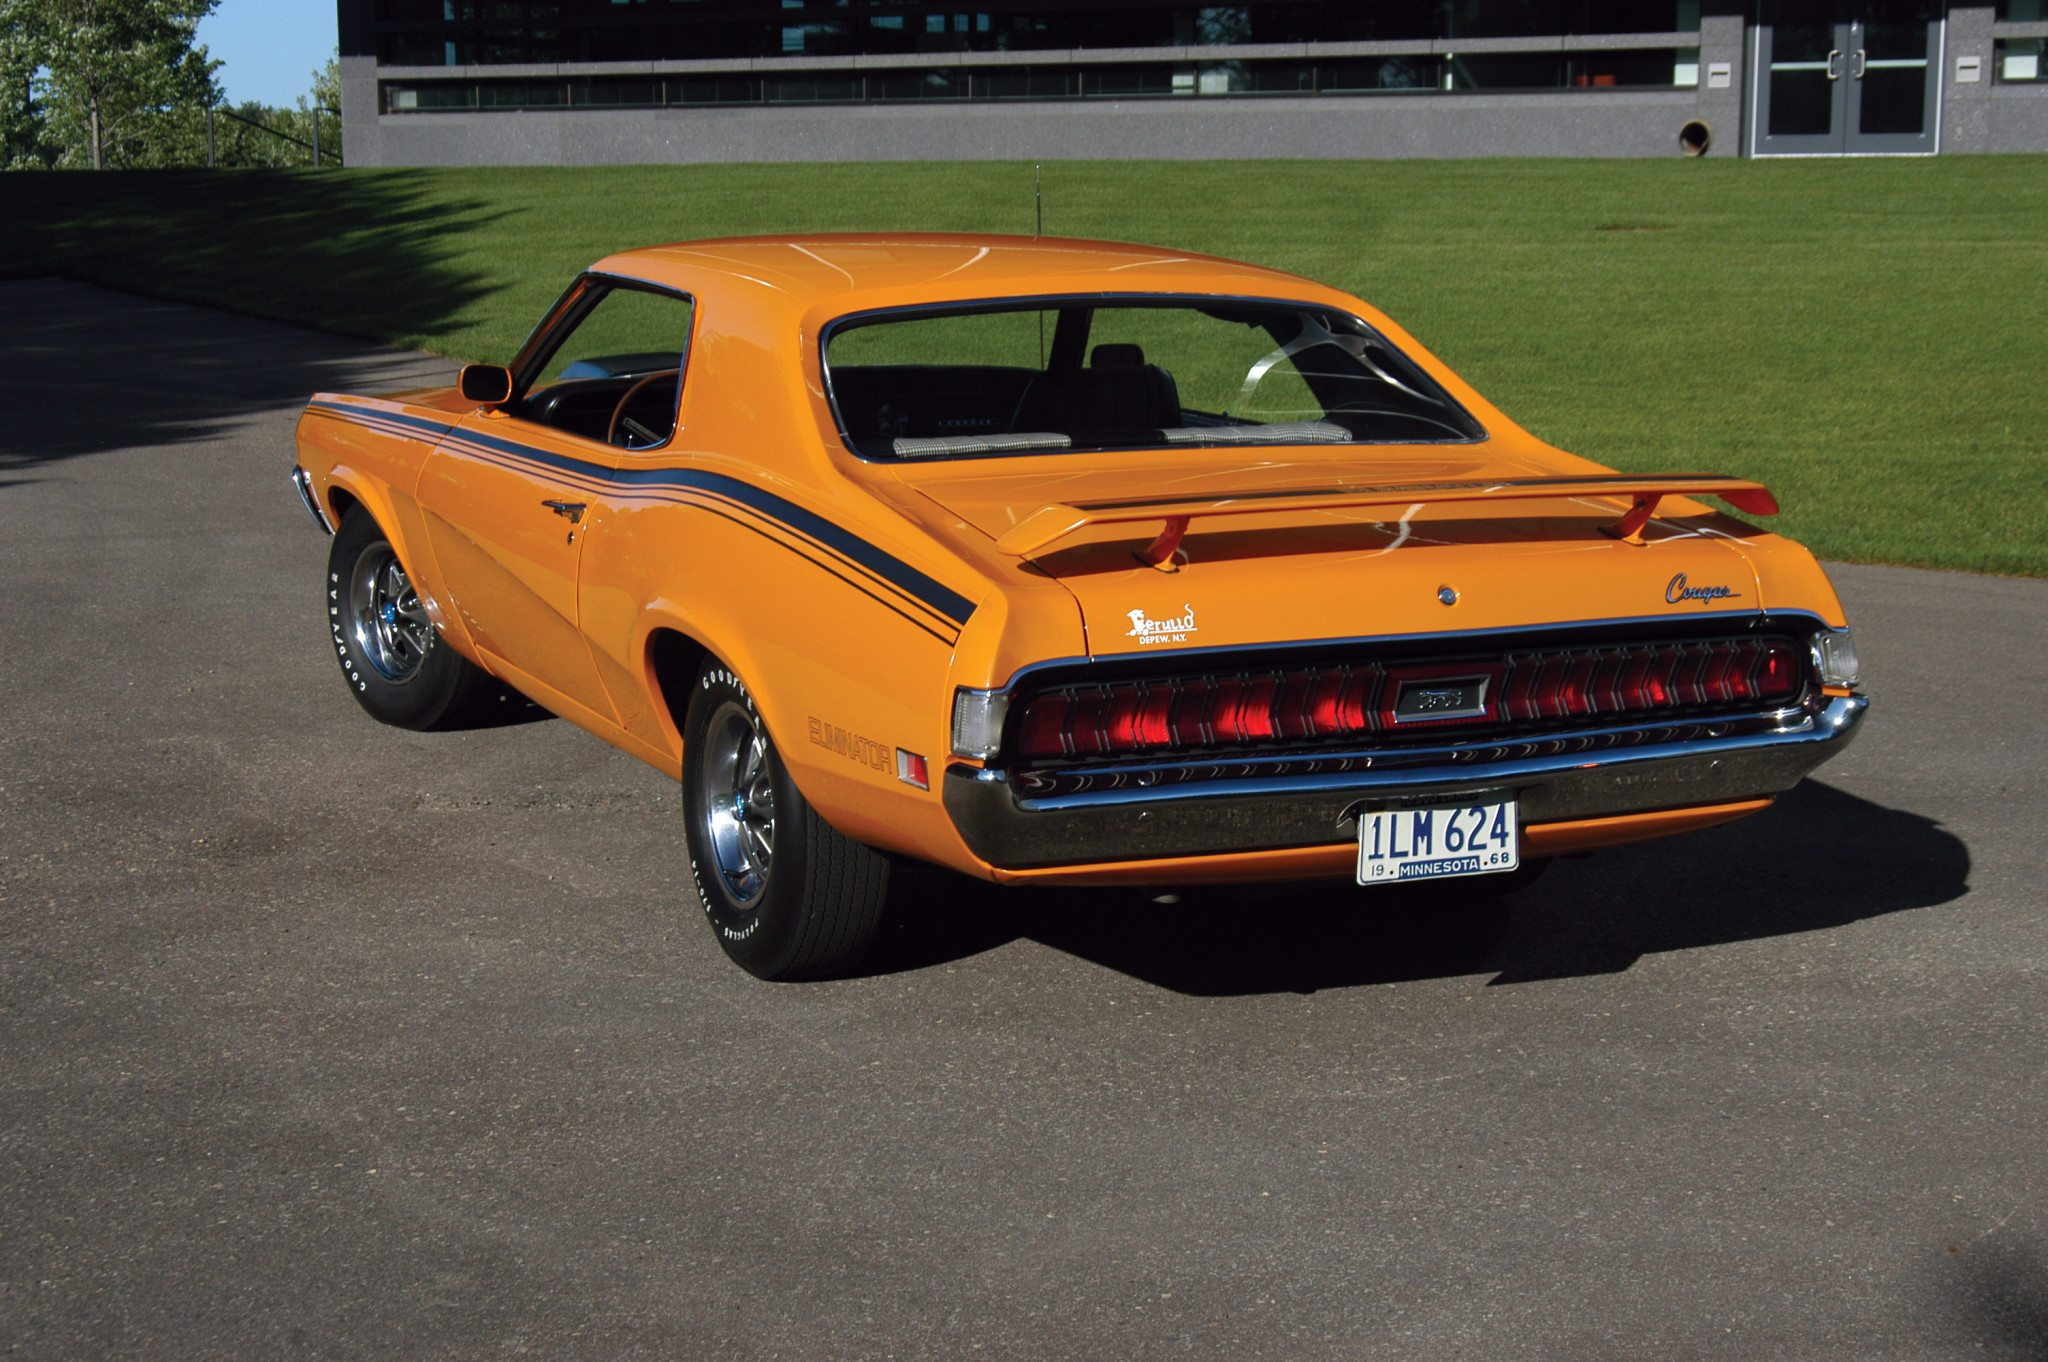 1970 Mercury Cougar Eliminator Rear